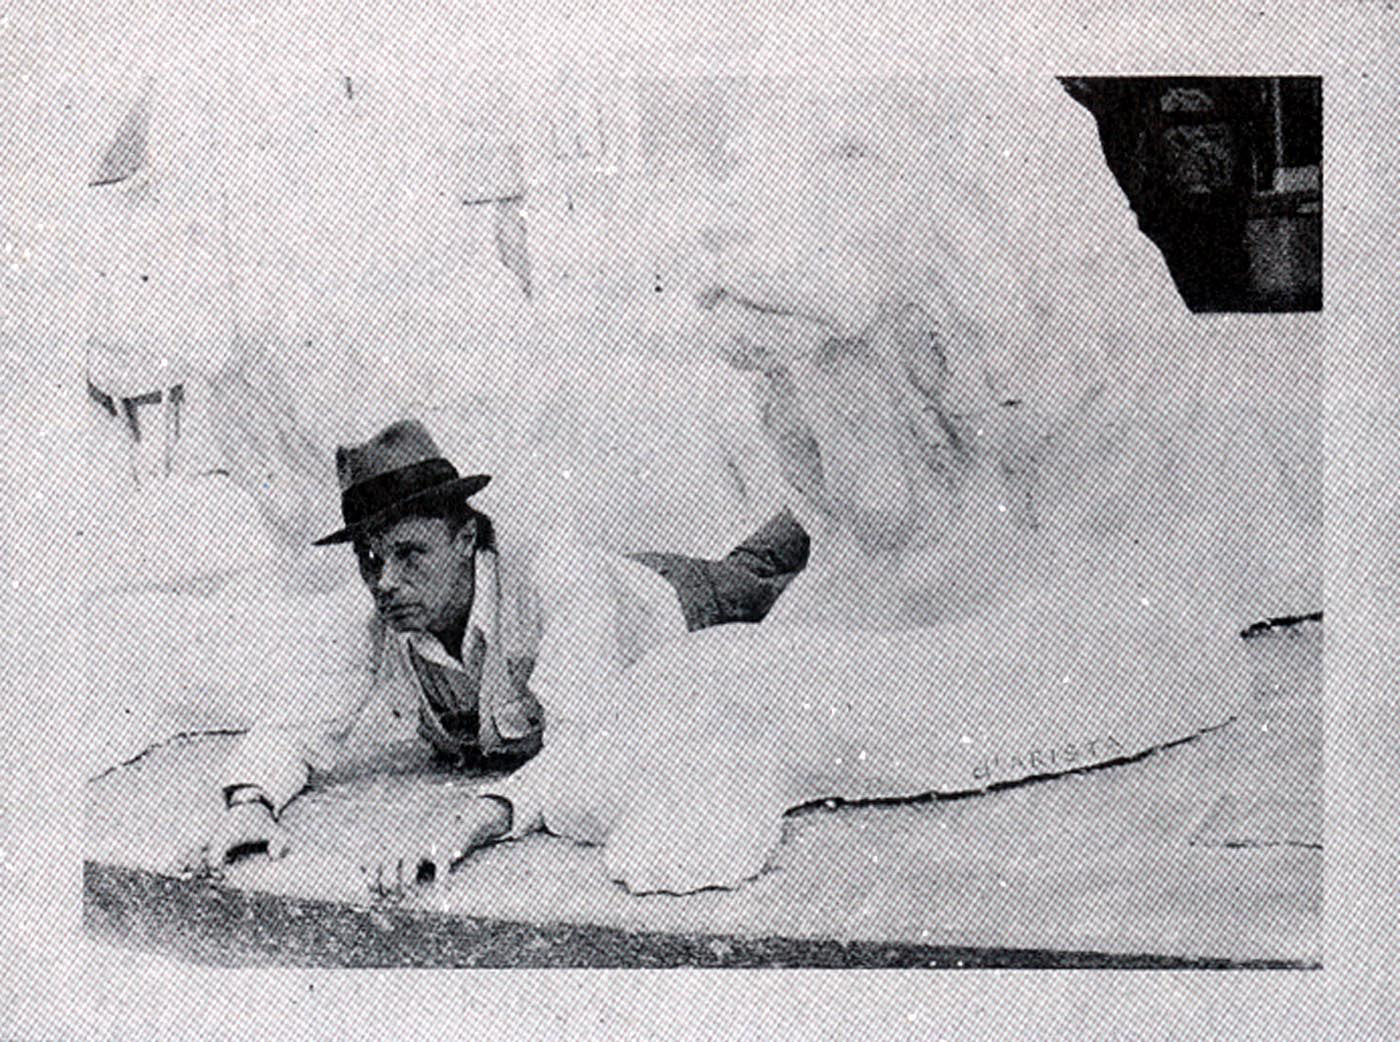 Joseph Beuys - Löwe, 1975, silkscreen on gray cardboard